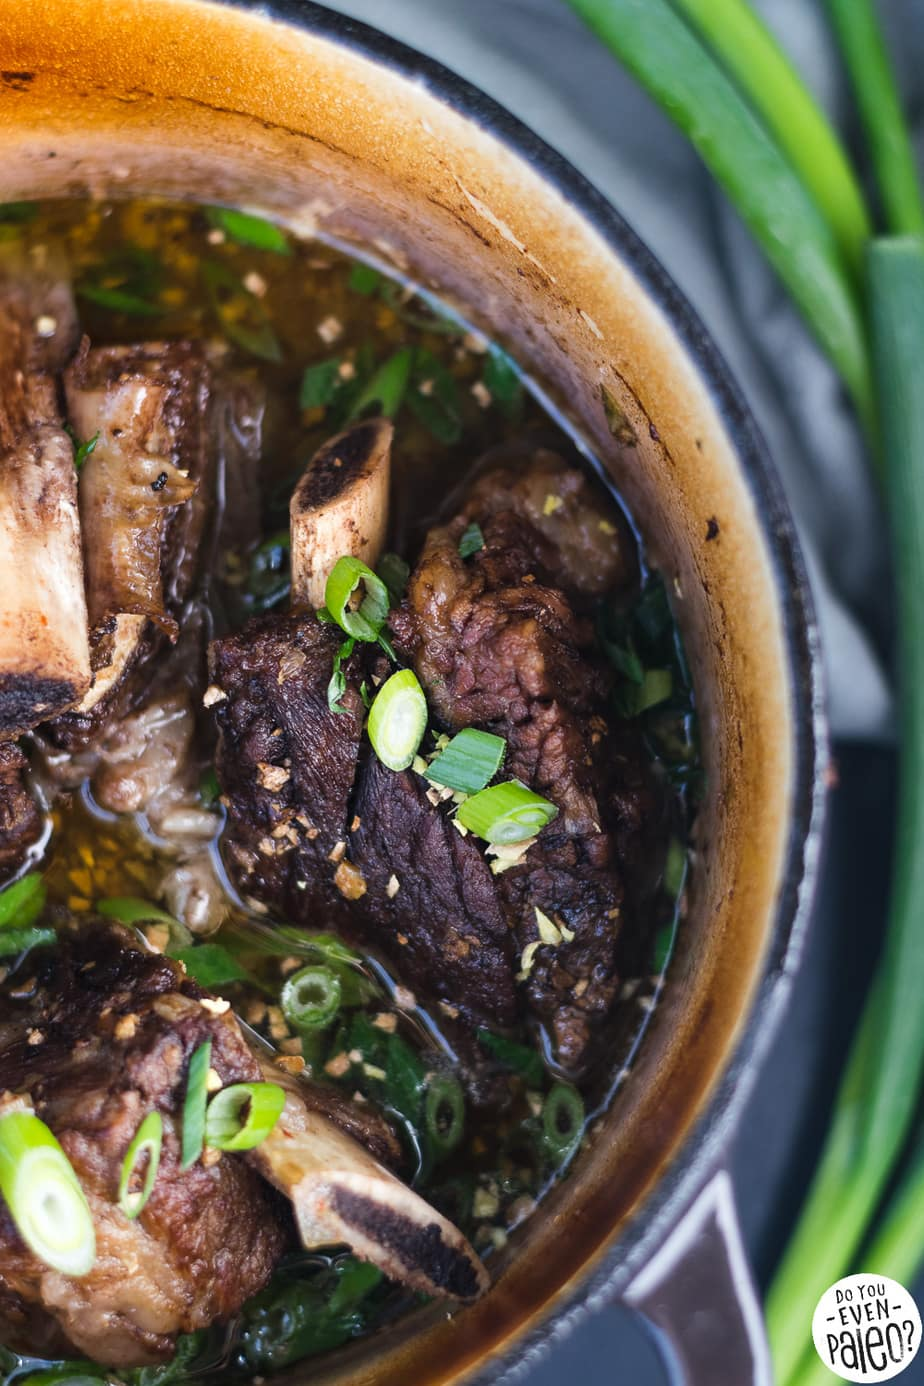 Paleo Braised Ginger Scallion Short Ribs with Cauliflower Rice | DoYouEvenPaleo.net